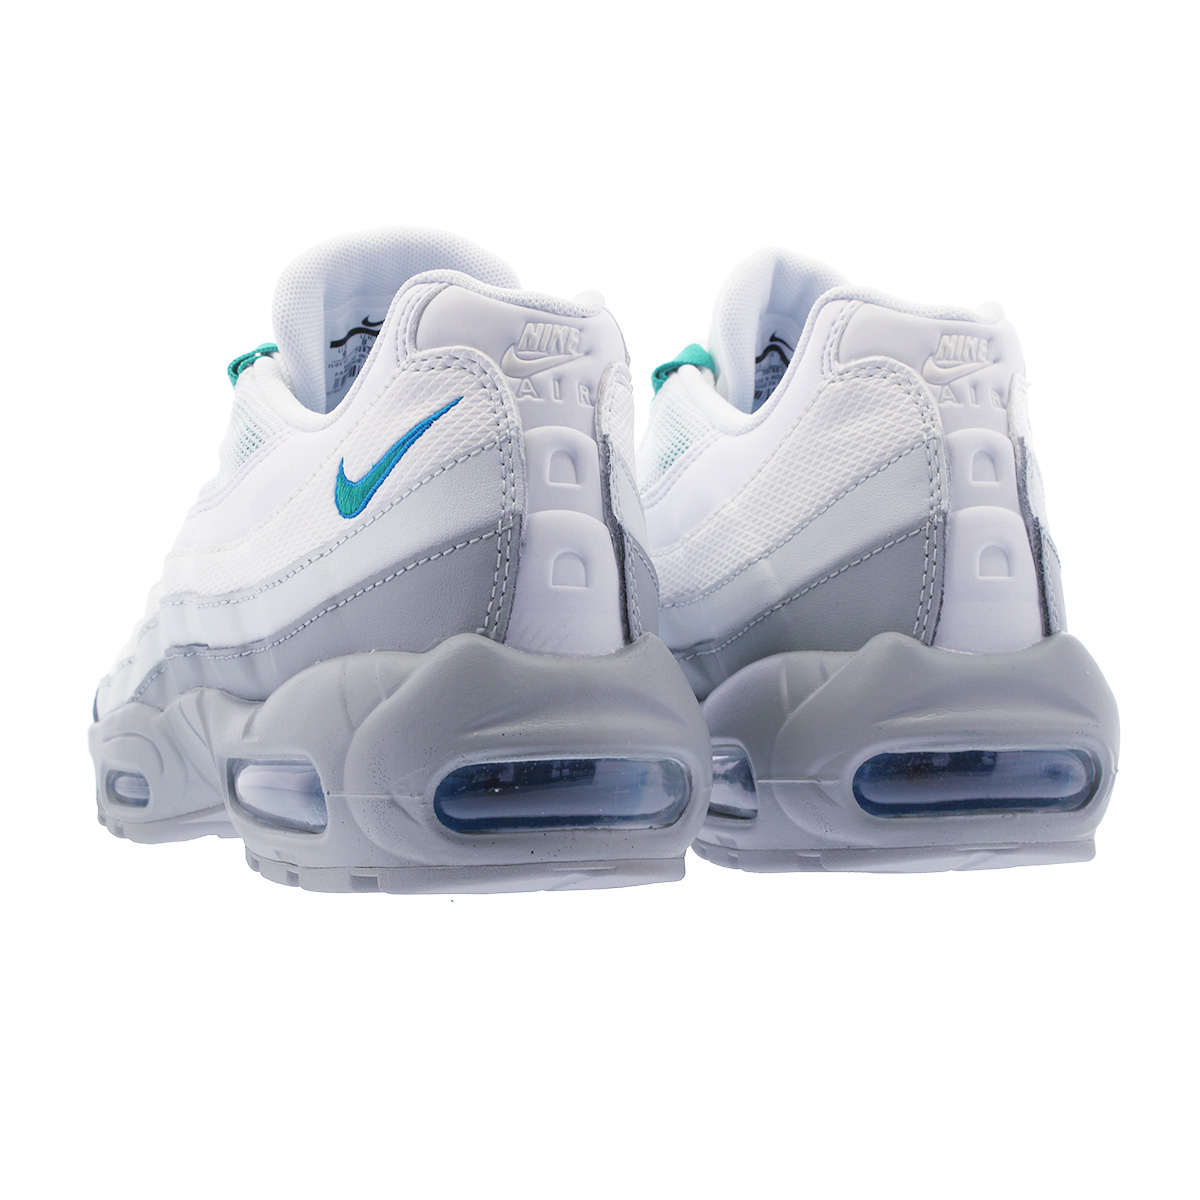 big sale 3e8b7 ee344 NIKE AIR MAX 95 ESSENTIAL Kie Ney AMAX 95 essential LIGHT PUMICECLEAR  EMERALDWHITE 749,766-032